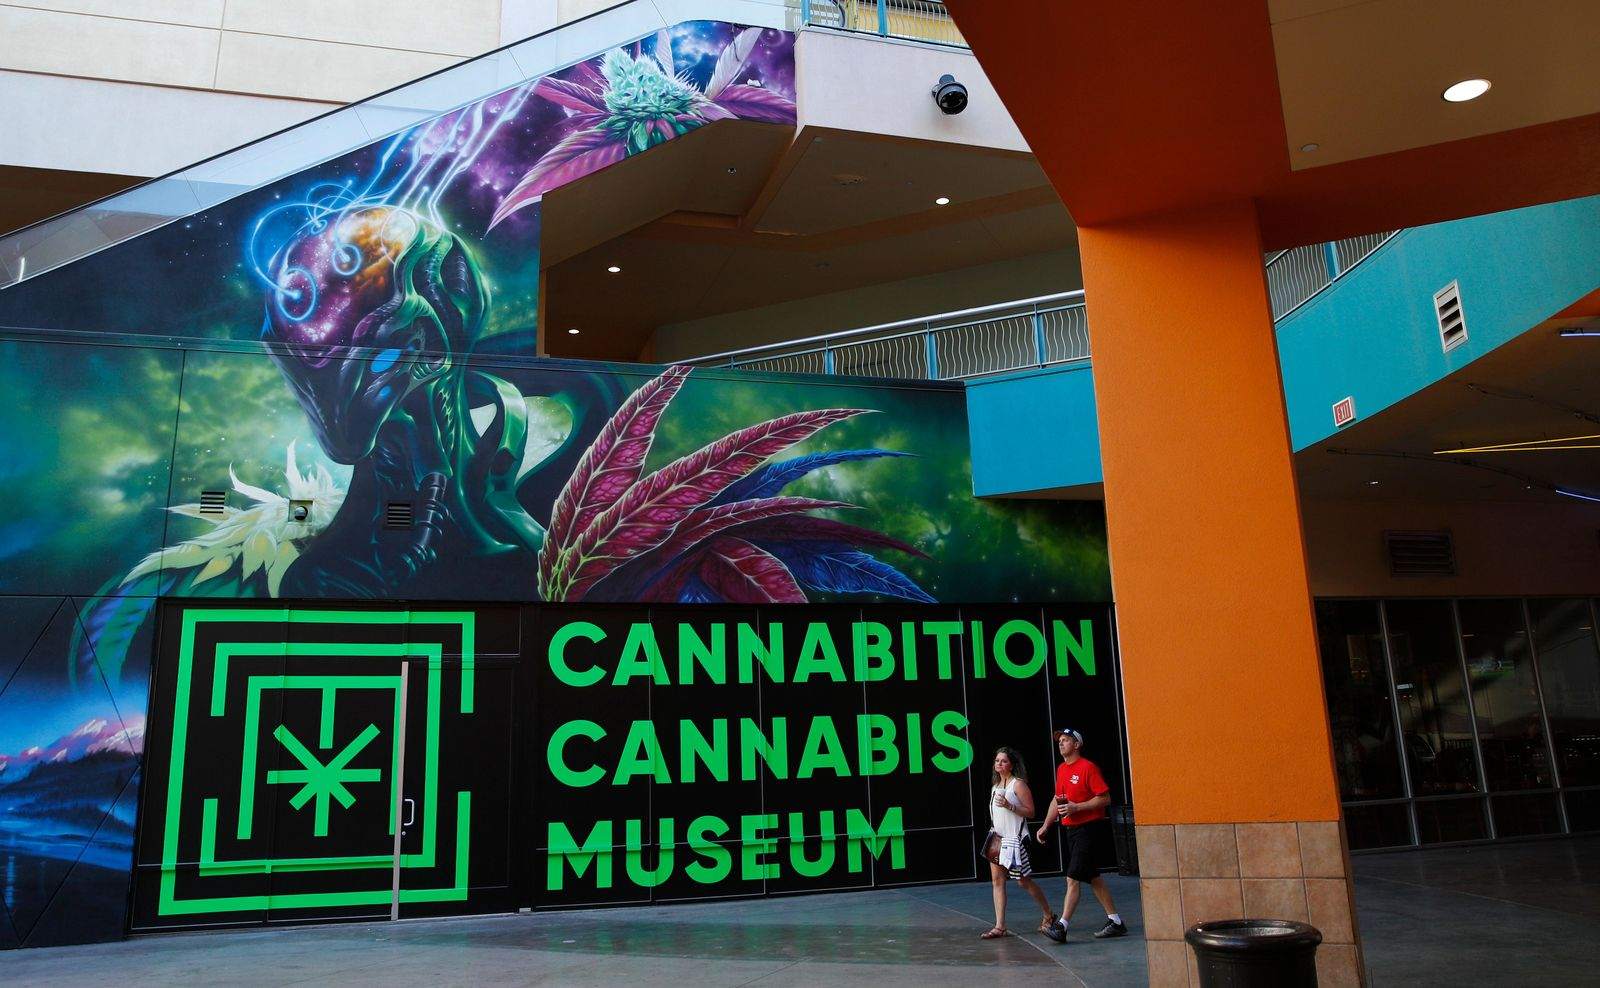 In this Tuesday, Sept. 18, 2018 photo, people walk by the Cannabition cannabis museum in Las Vegas. (AP Photo/John Locher)